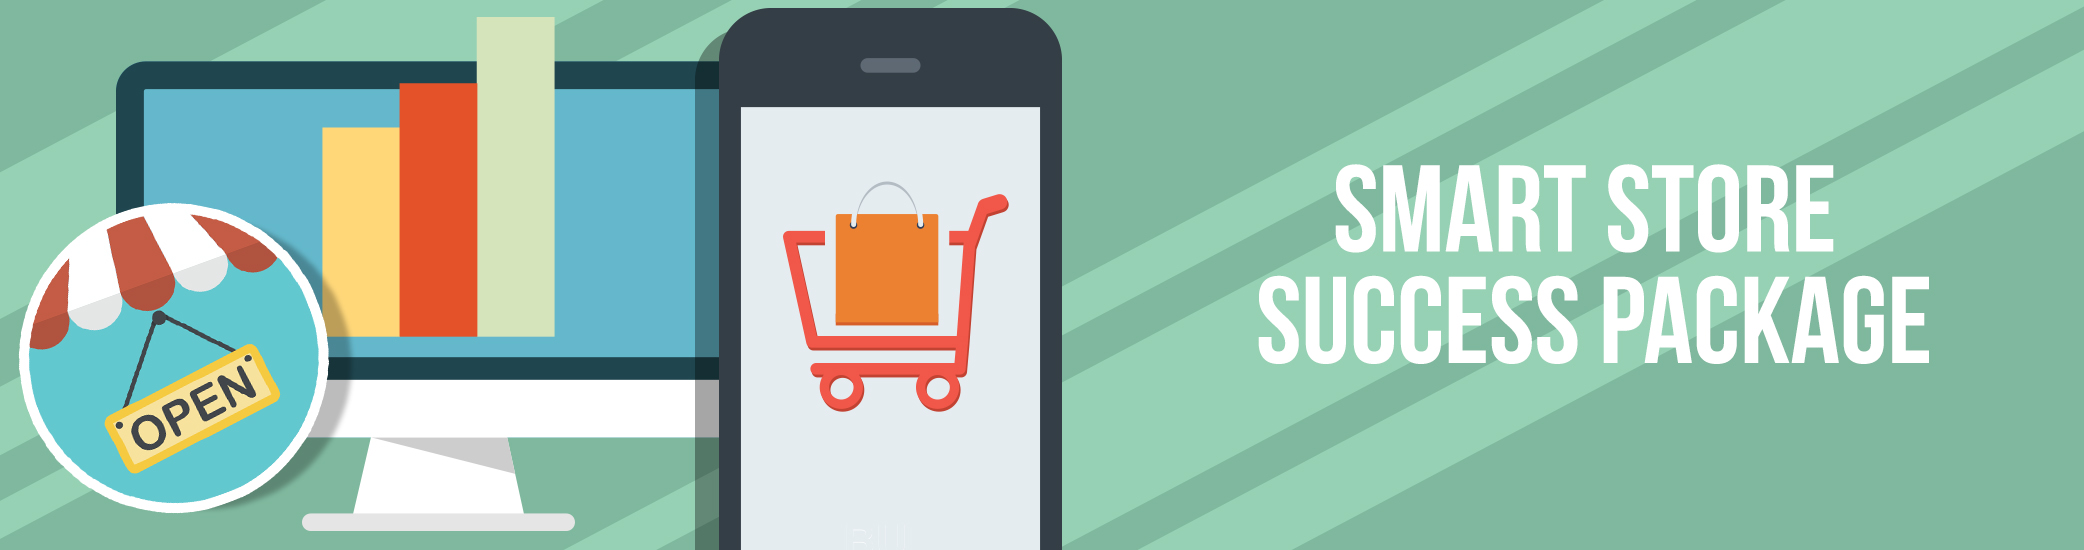 Smart Store Success Package